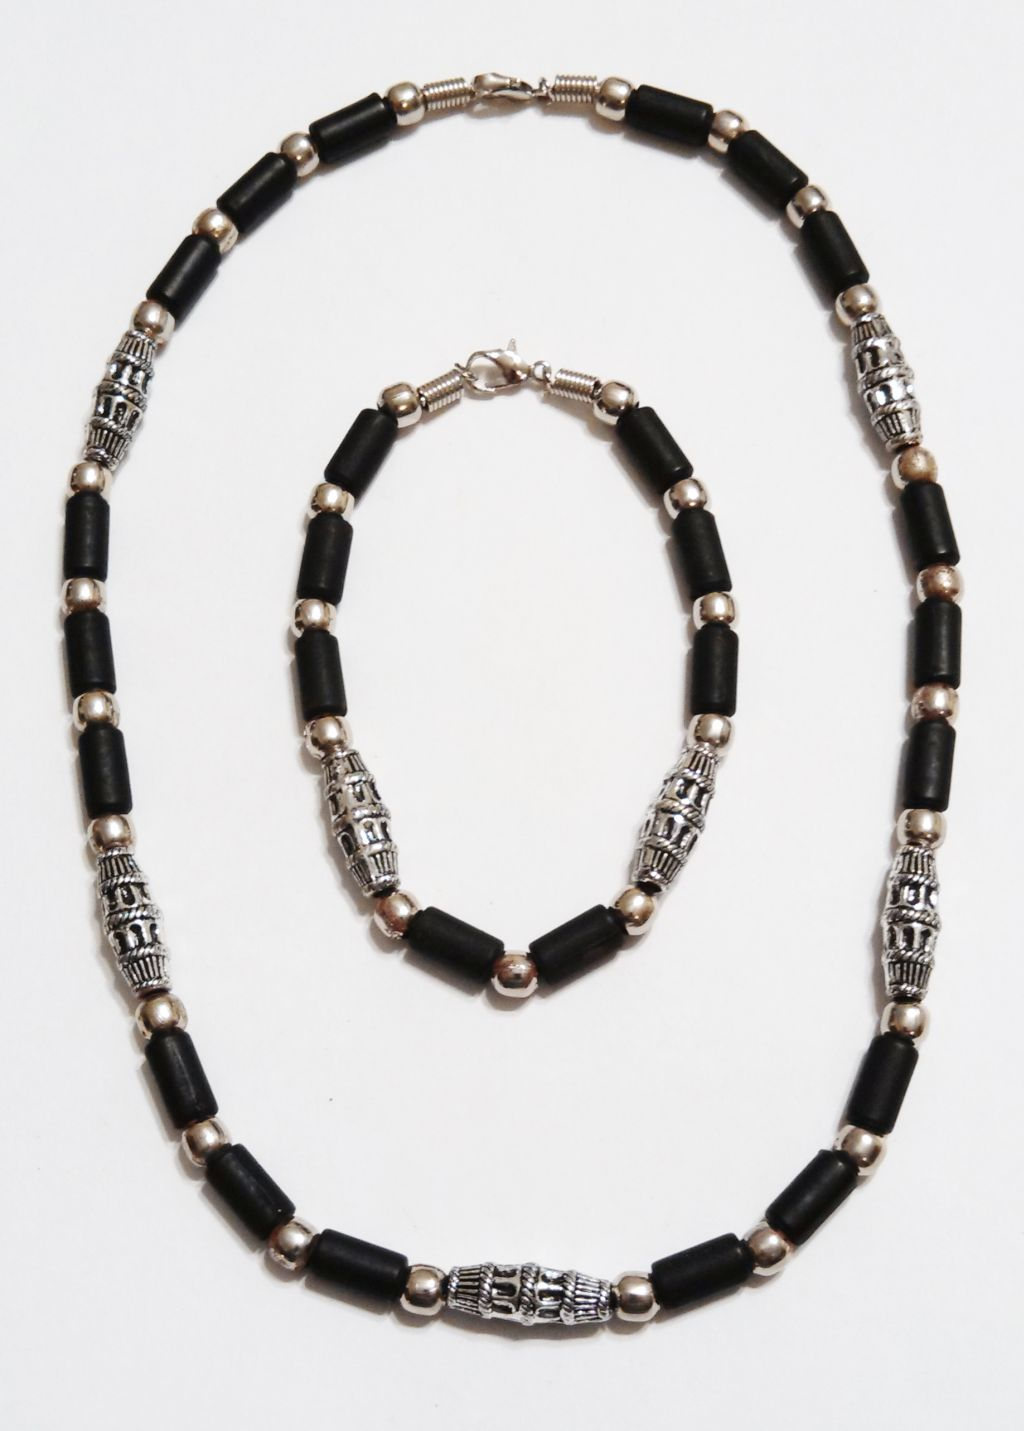 Aruba Two-Tone Chrome Black Beach Beaded Necklace Bracelet, Surfer Choker Men's Jewelry